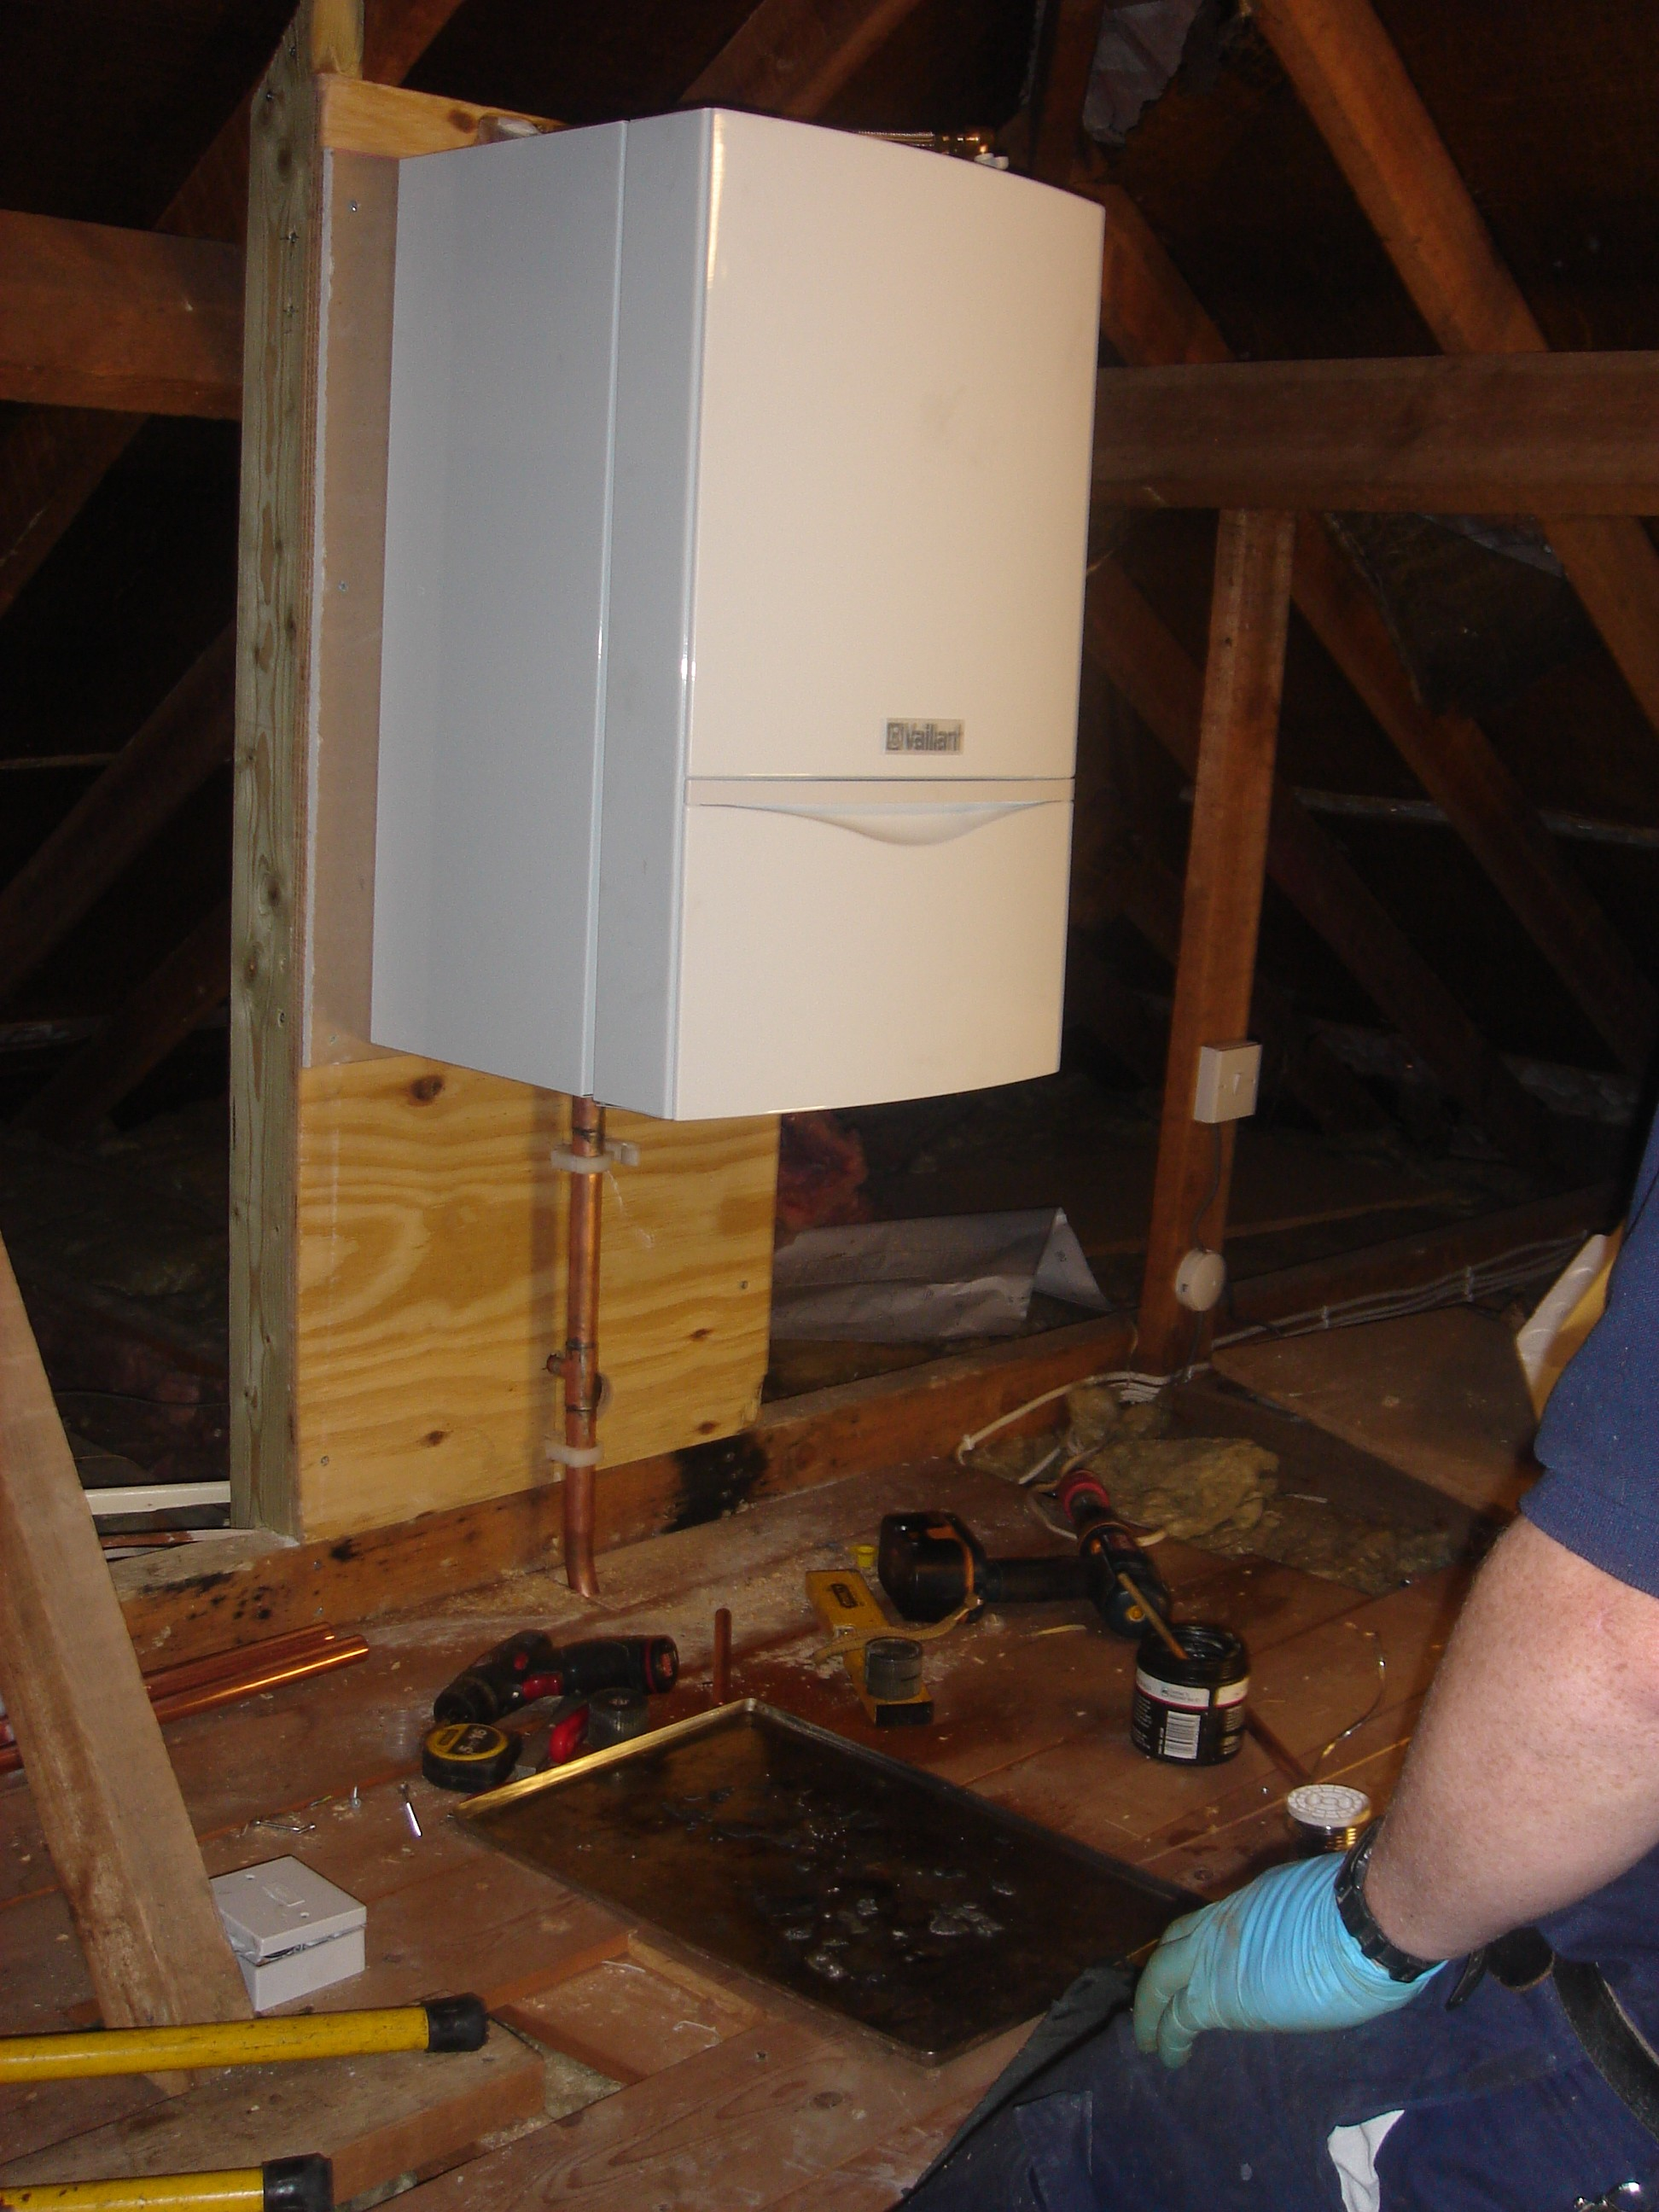 Vaillant Combination Boiler In Loft With Weather